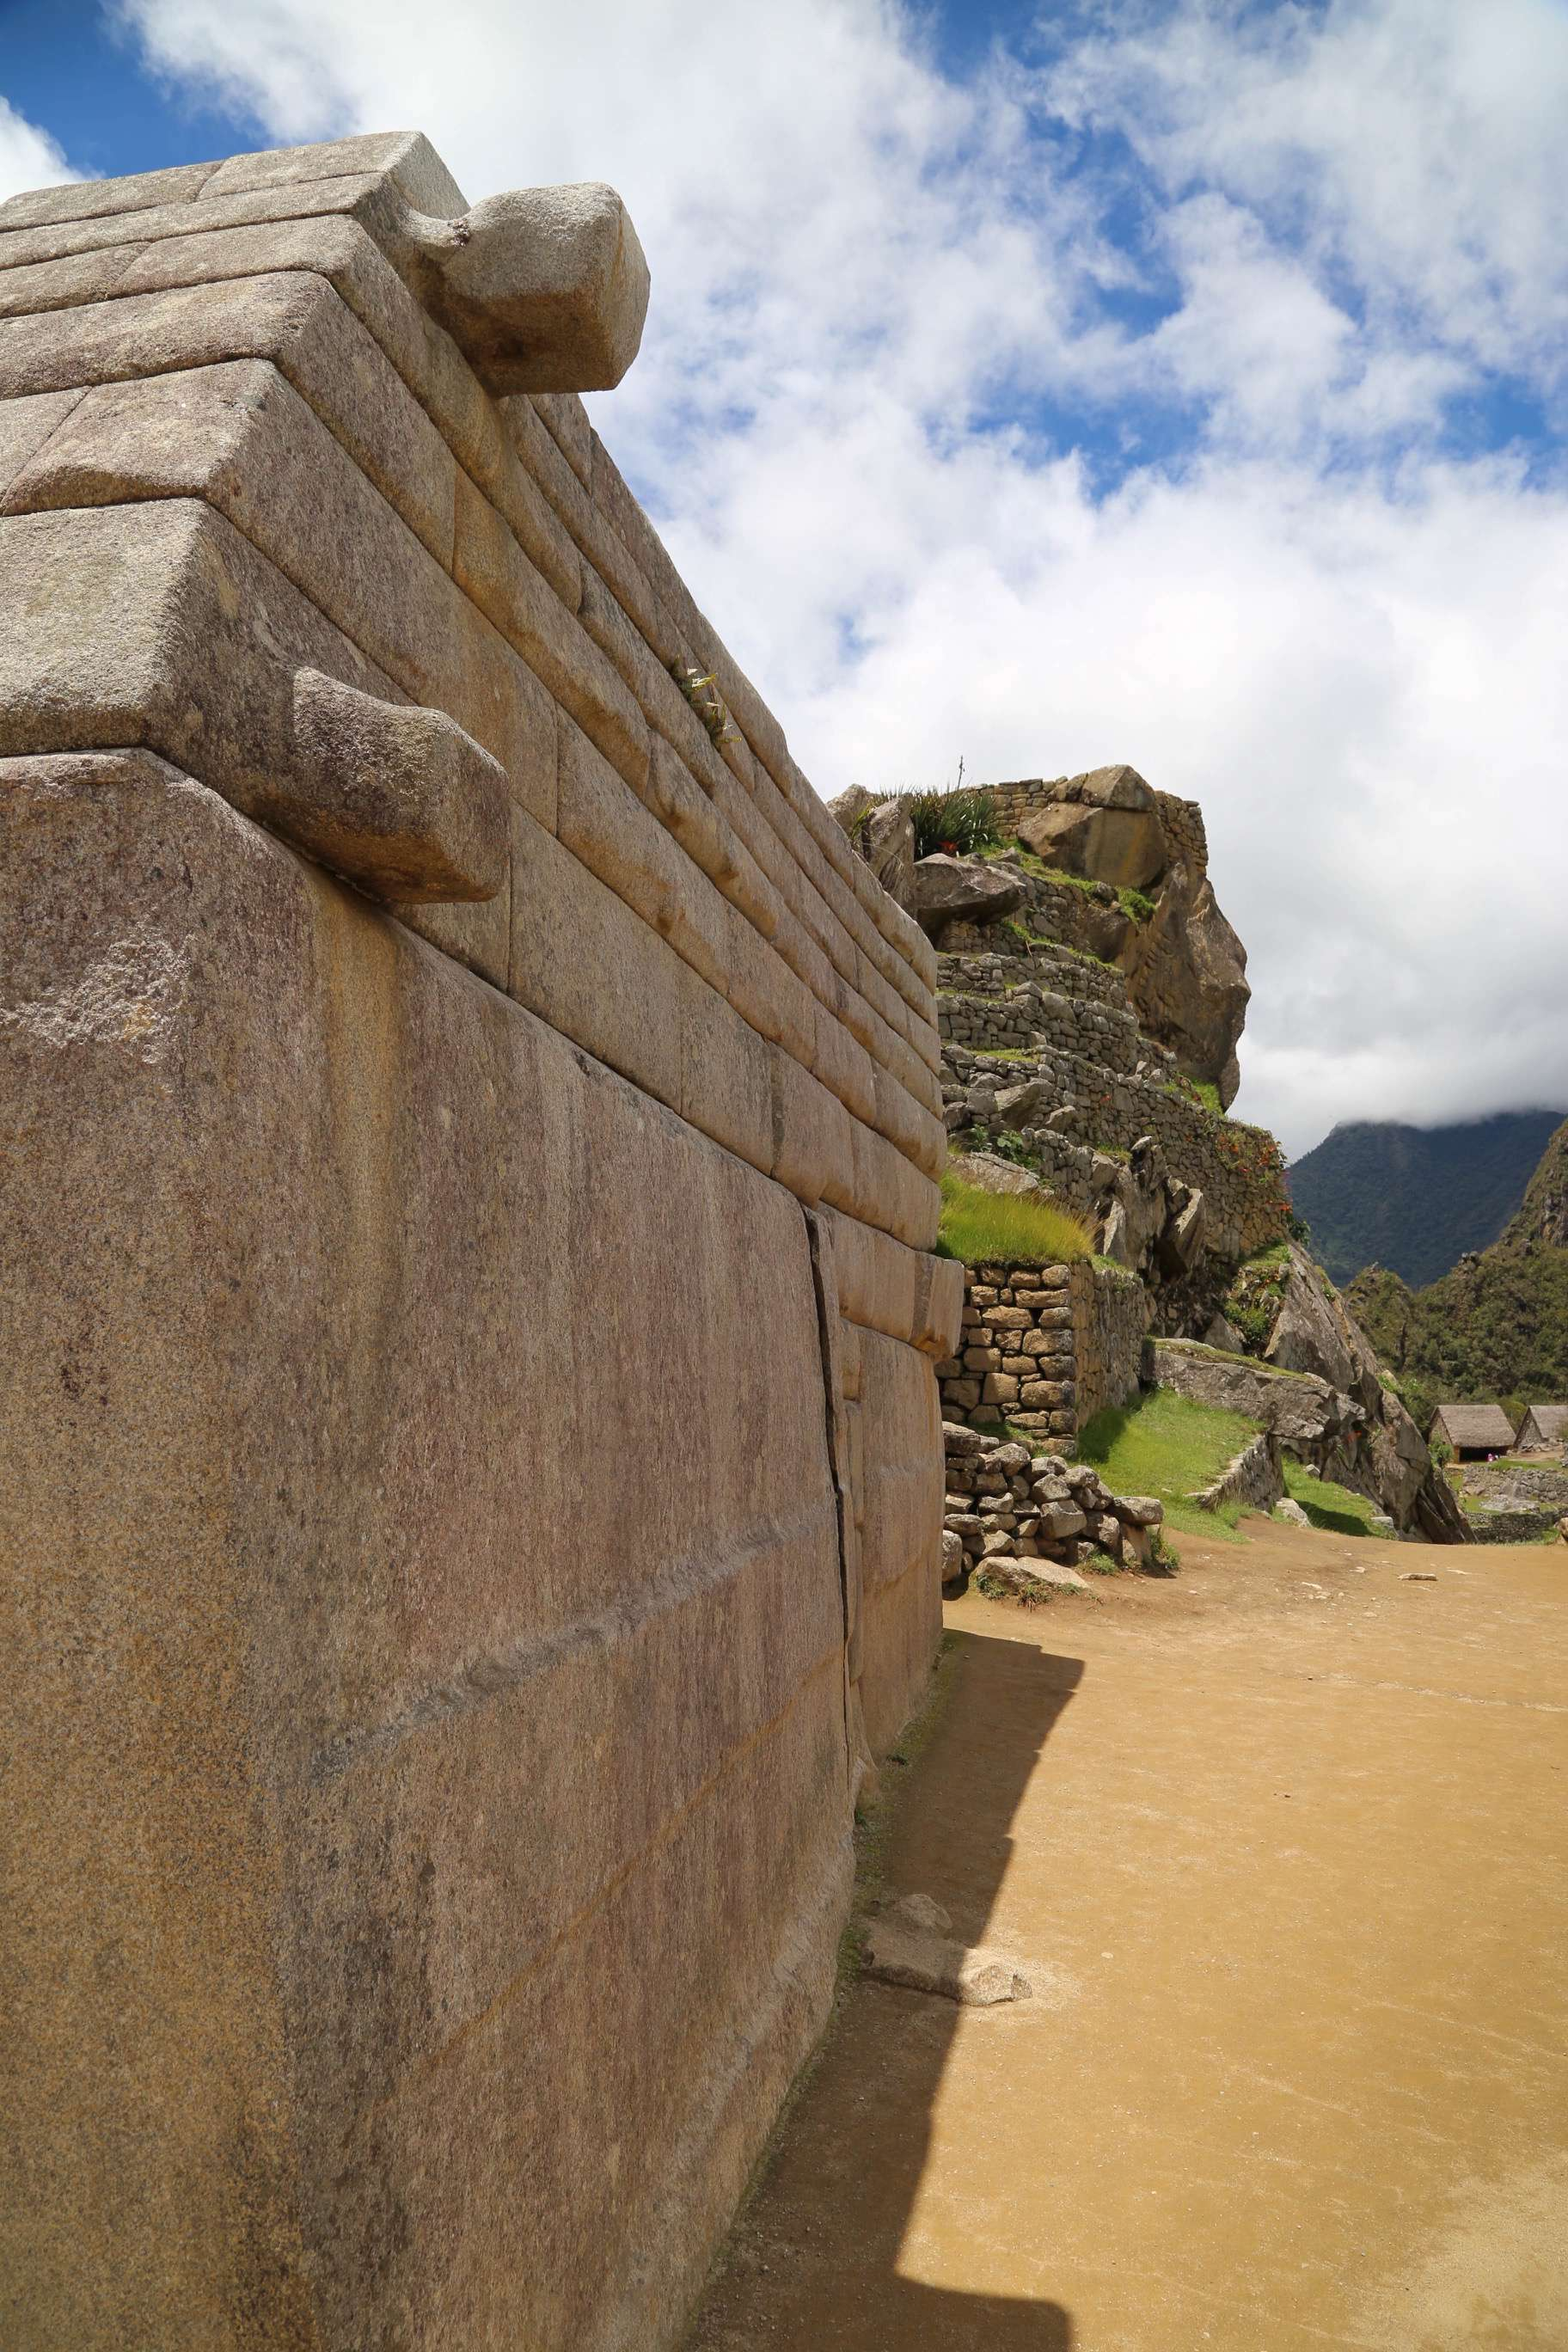 The precision of Inca stone work can be seen on the wall at the left, where even to this day the fitting is so tight the blade of a knife cannot be inserted between stones.